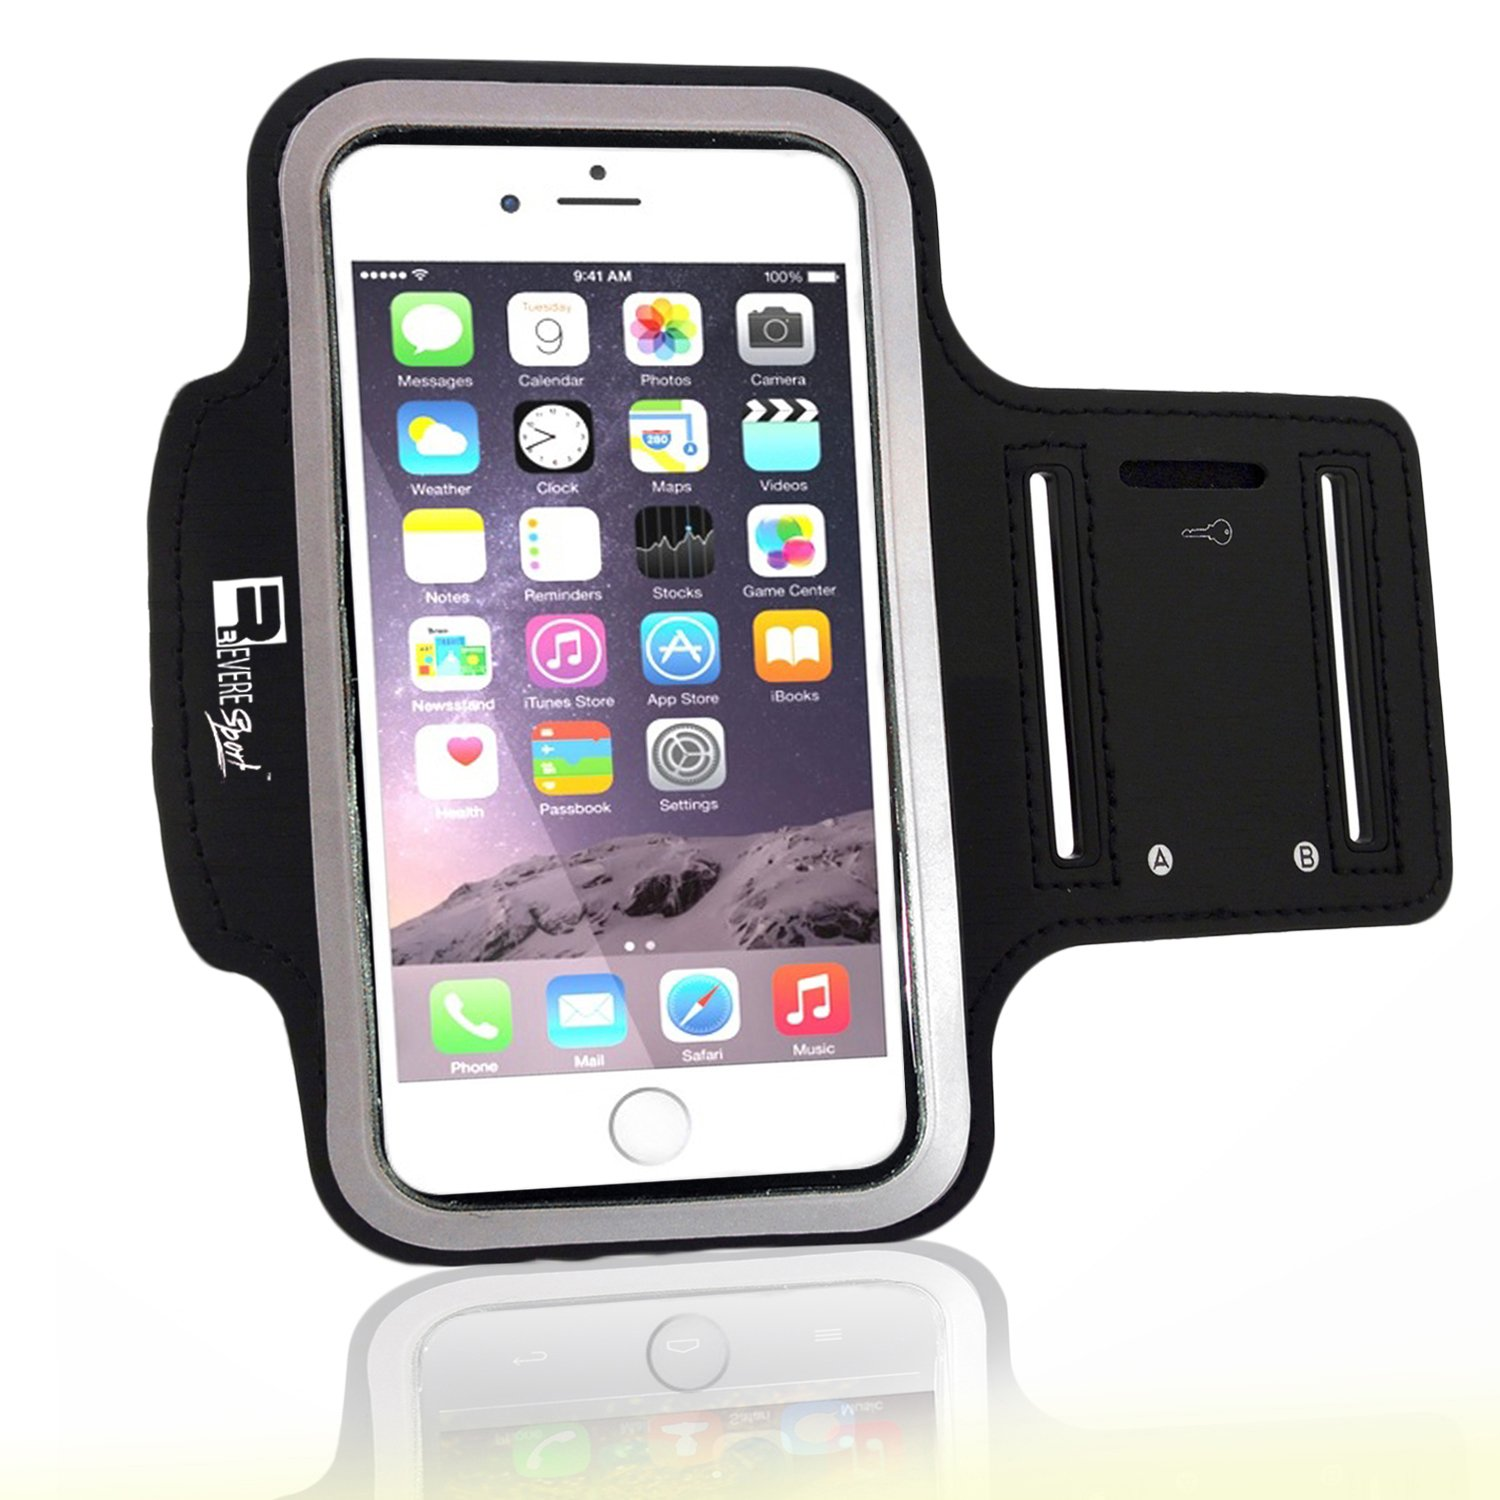 Relojes Y Joyas 100% True 5.5inch Sports Running Jogging Gym Armband Arm Band Holder Bag For Mobile Phones